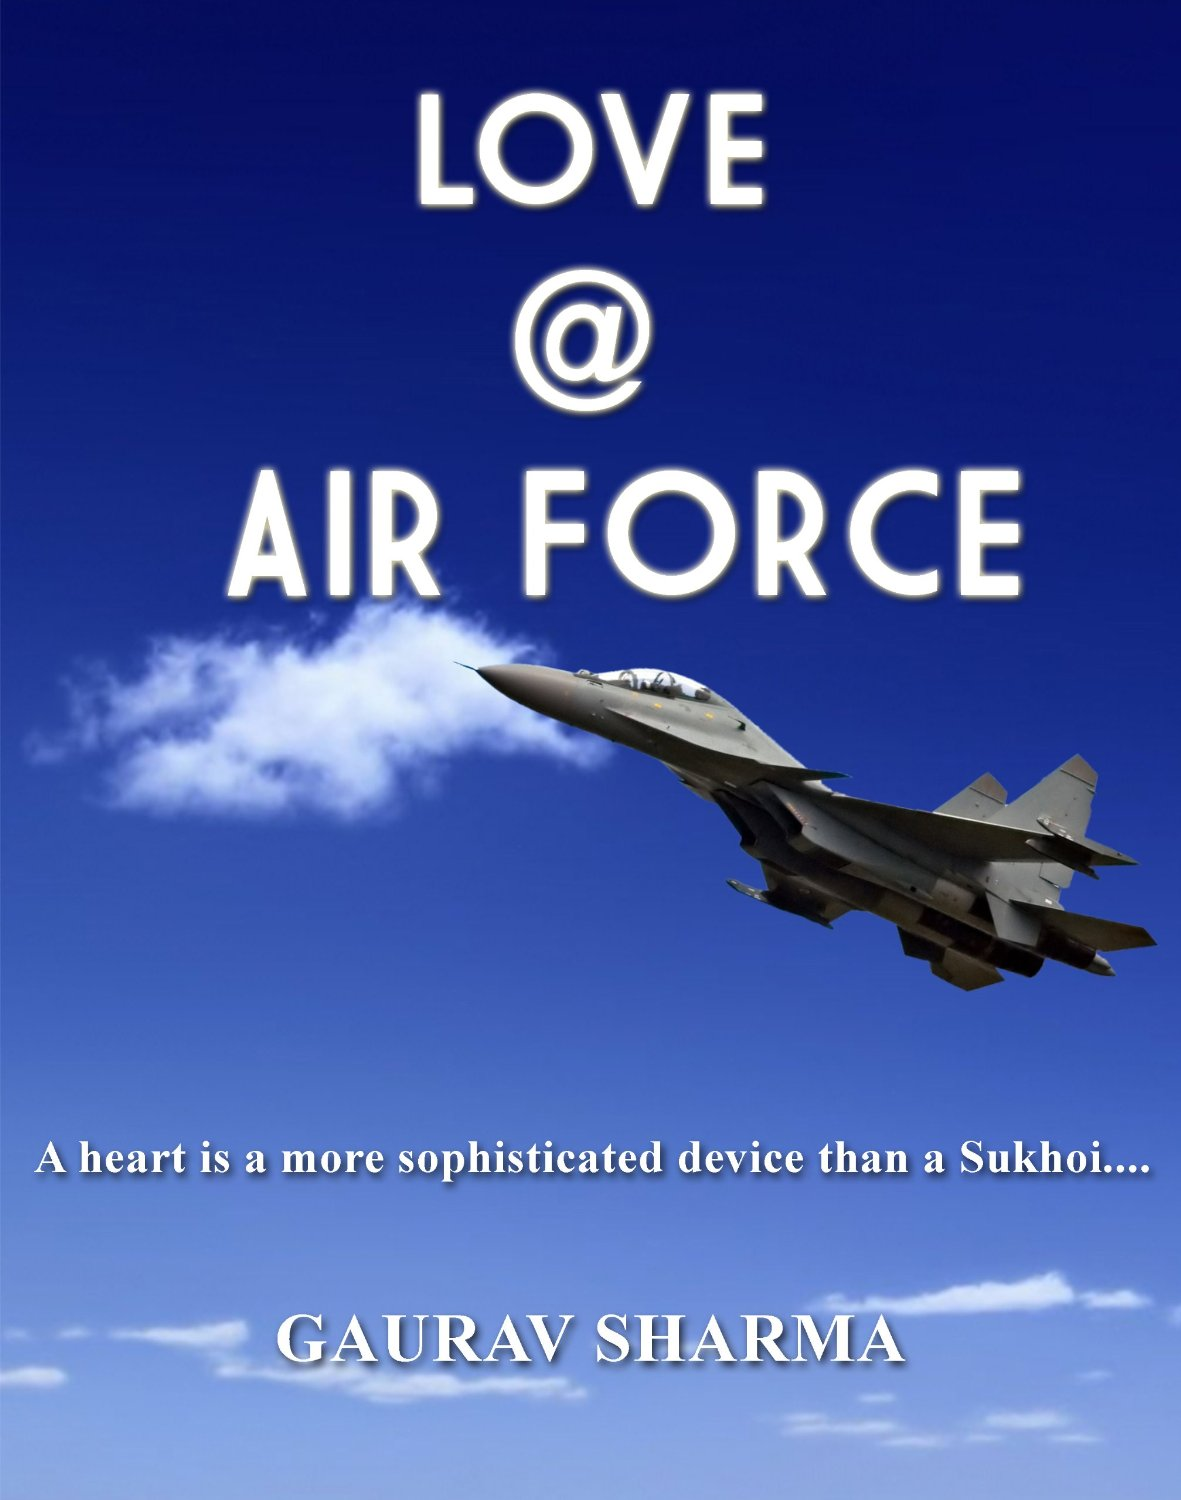 Cover Photo of Love @ Air Force by Gaurav Sharma